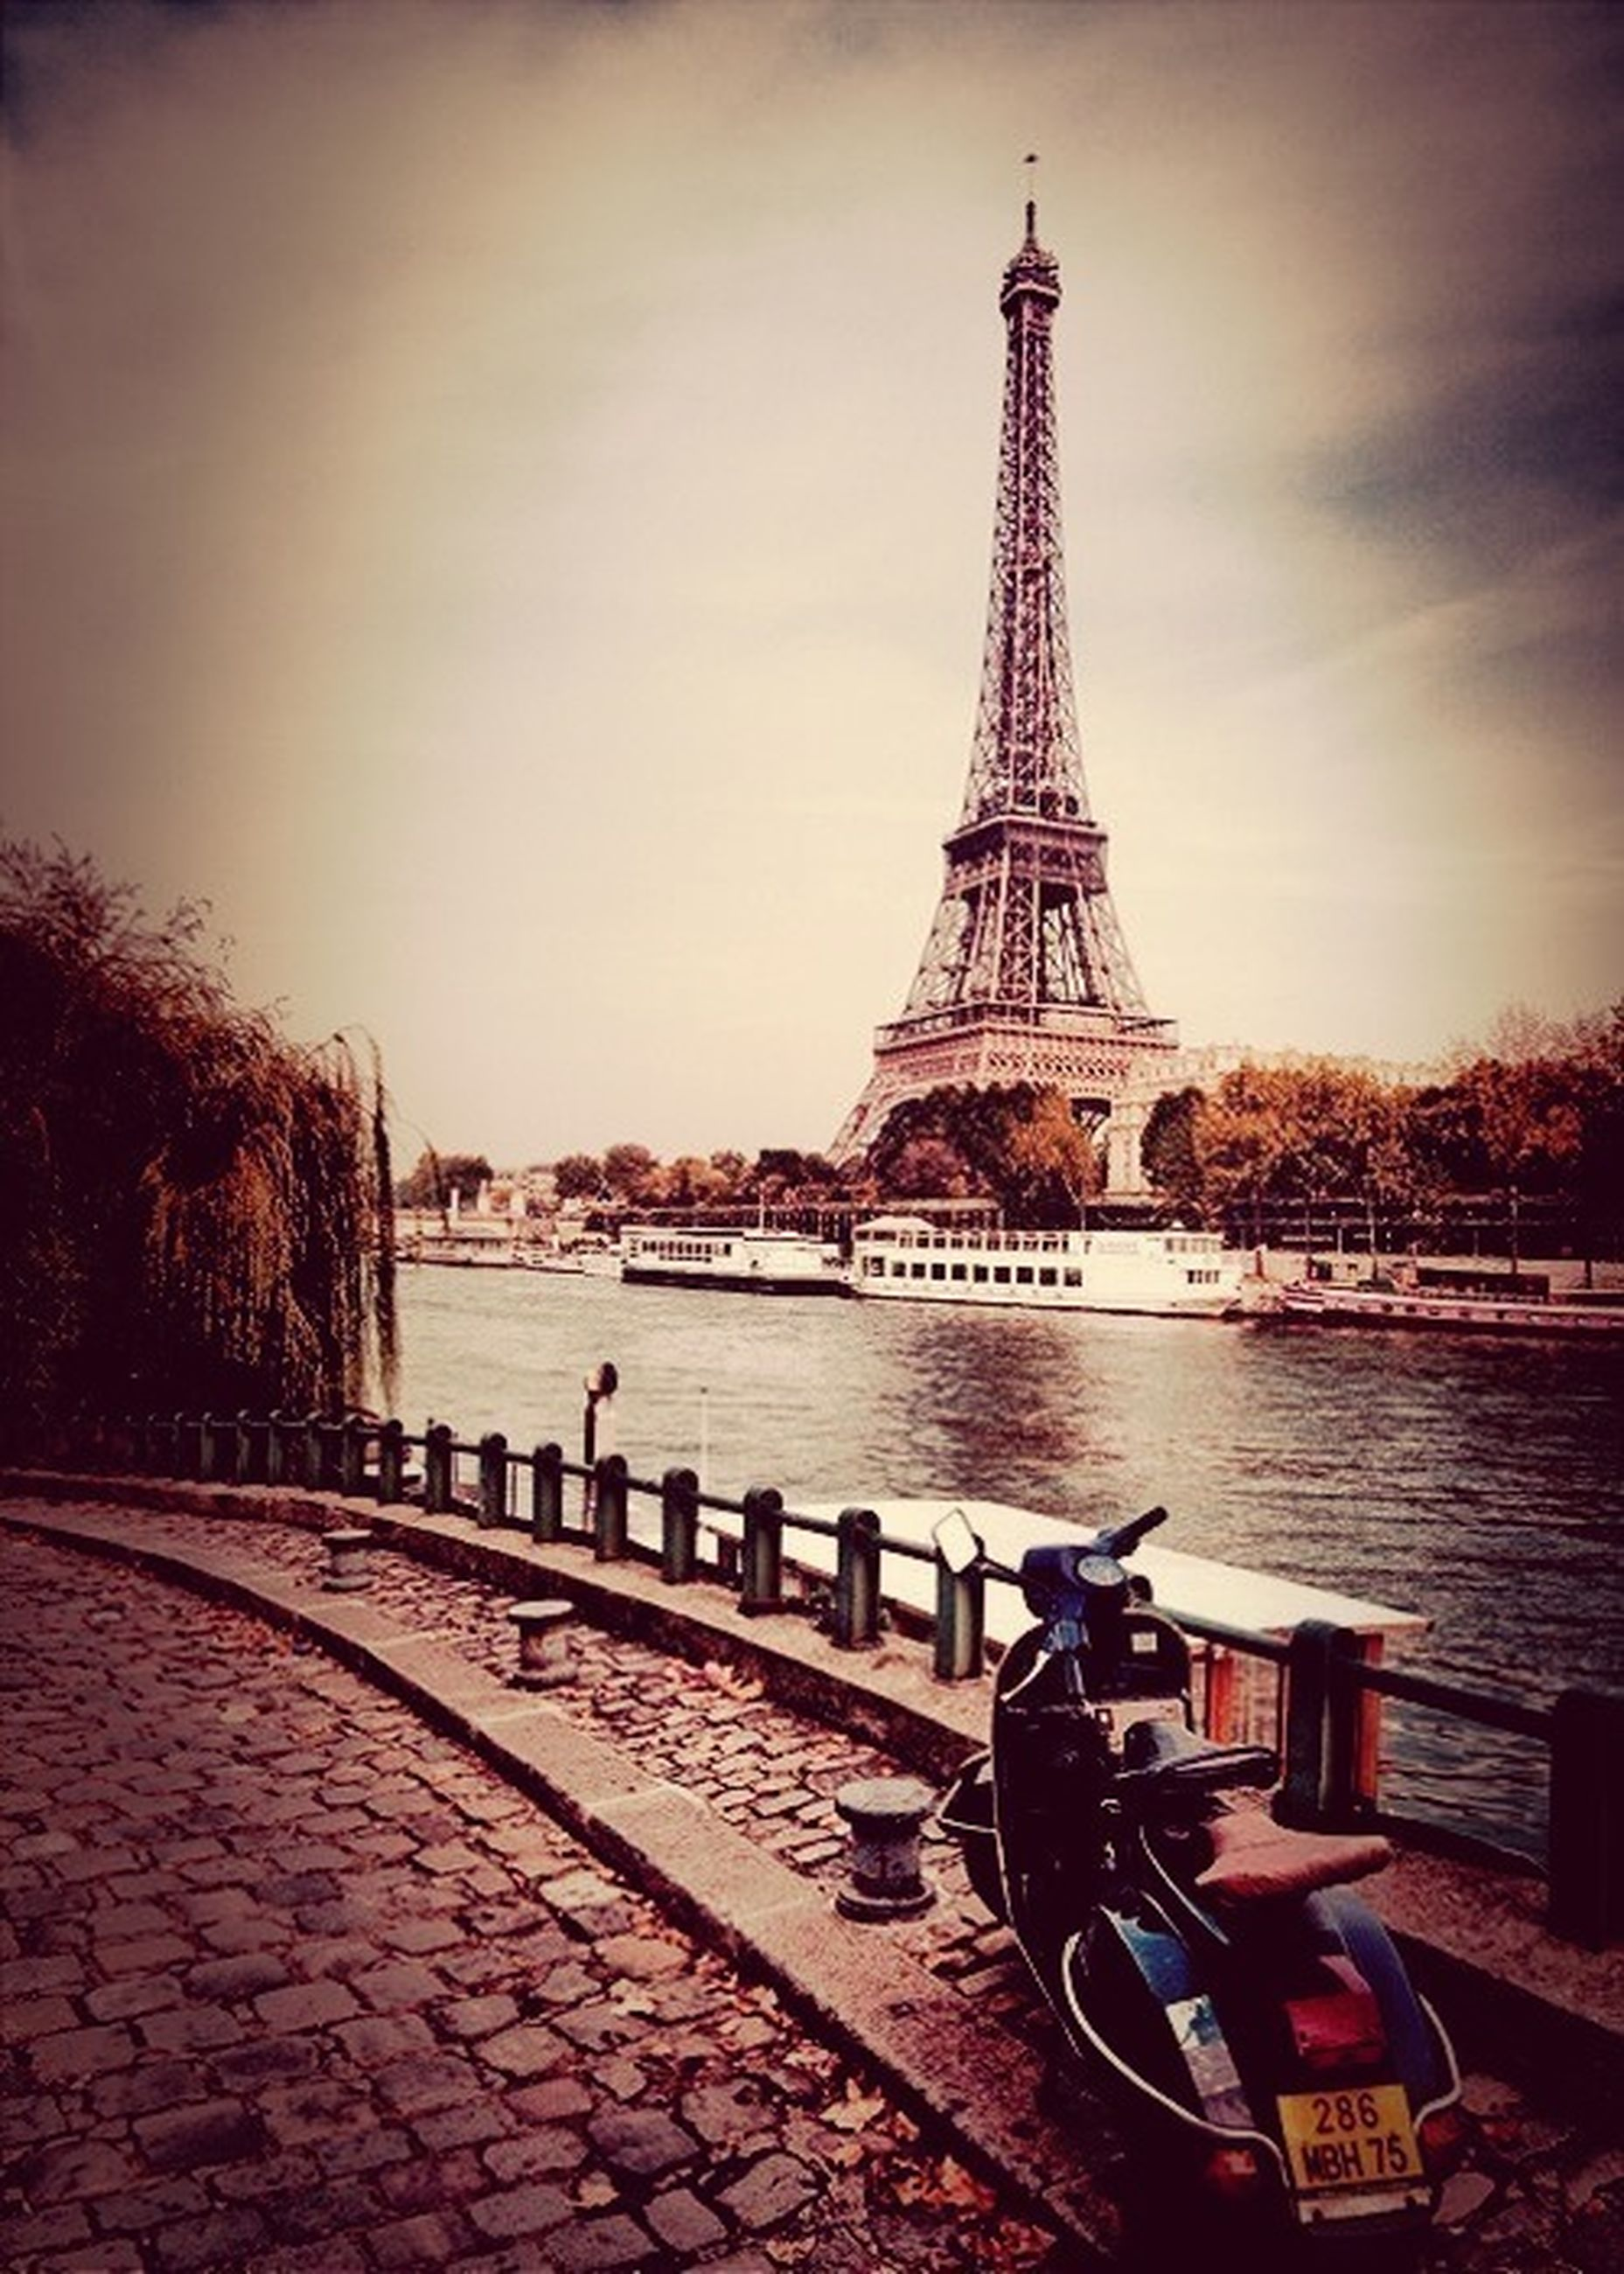 eiffel tower, built structure, architecture, famous place, travel destinations, sky, culture, international landmark, tower, tourism, travel, building exterior, metal, capital cities, water, transportation, river, city, tall - high, history